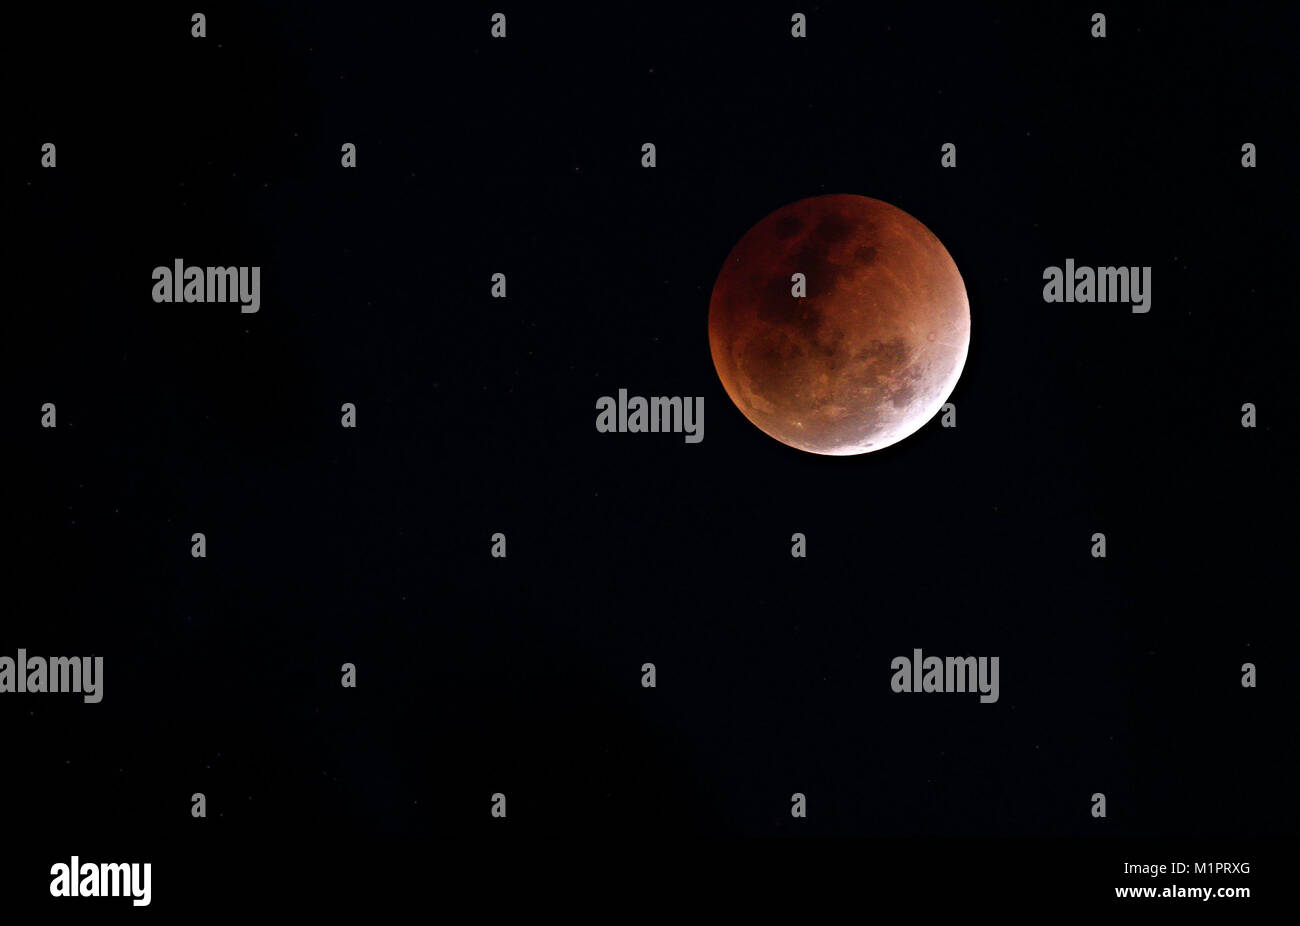 Super Blue Blood Moon - Lunar Eclipse - 31 January 2018 Stock Photo